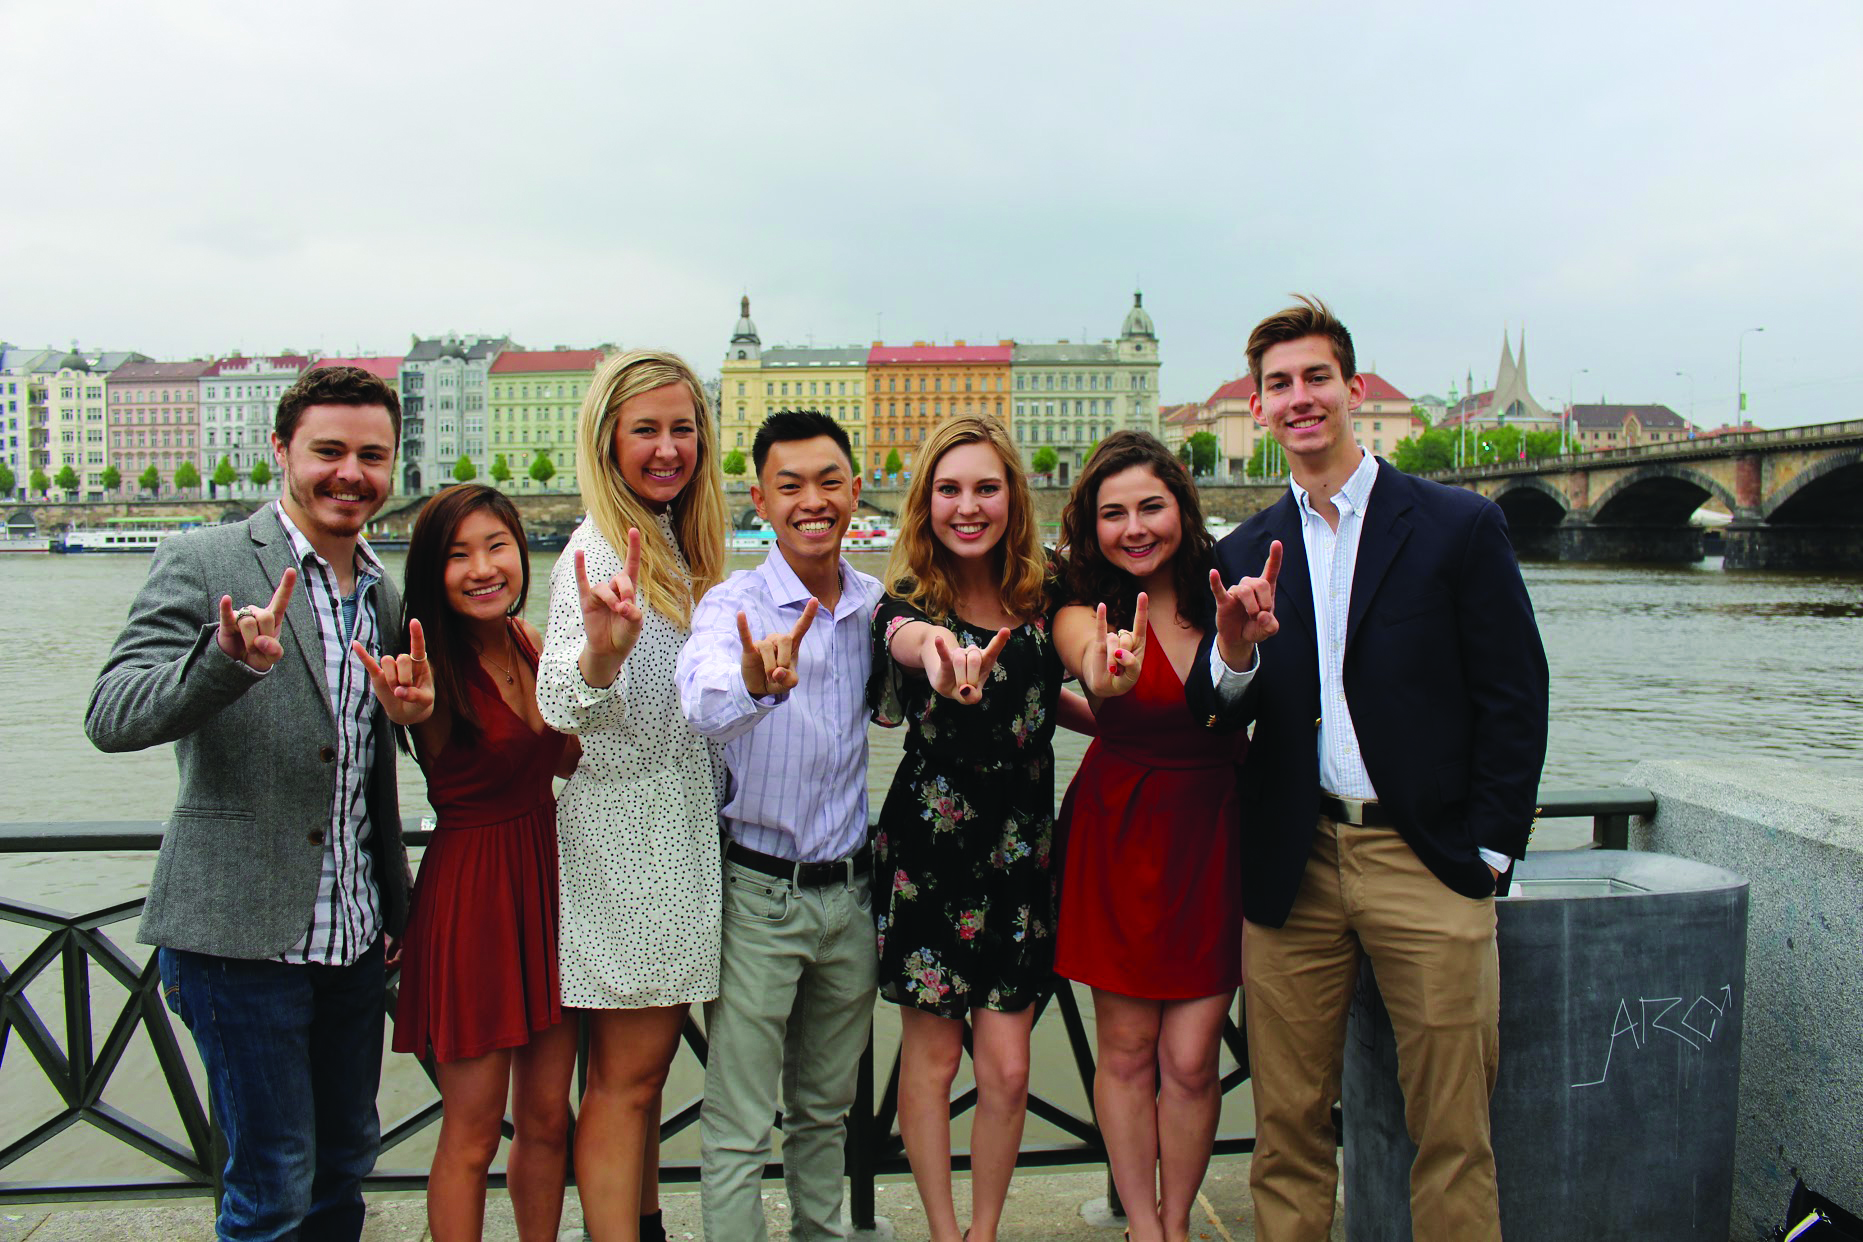 A diverse mix of UT abroad students pose with the Hook 'Em horns on a pier on a rivers edge with buildings in the background